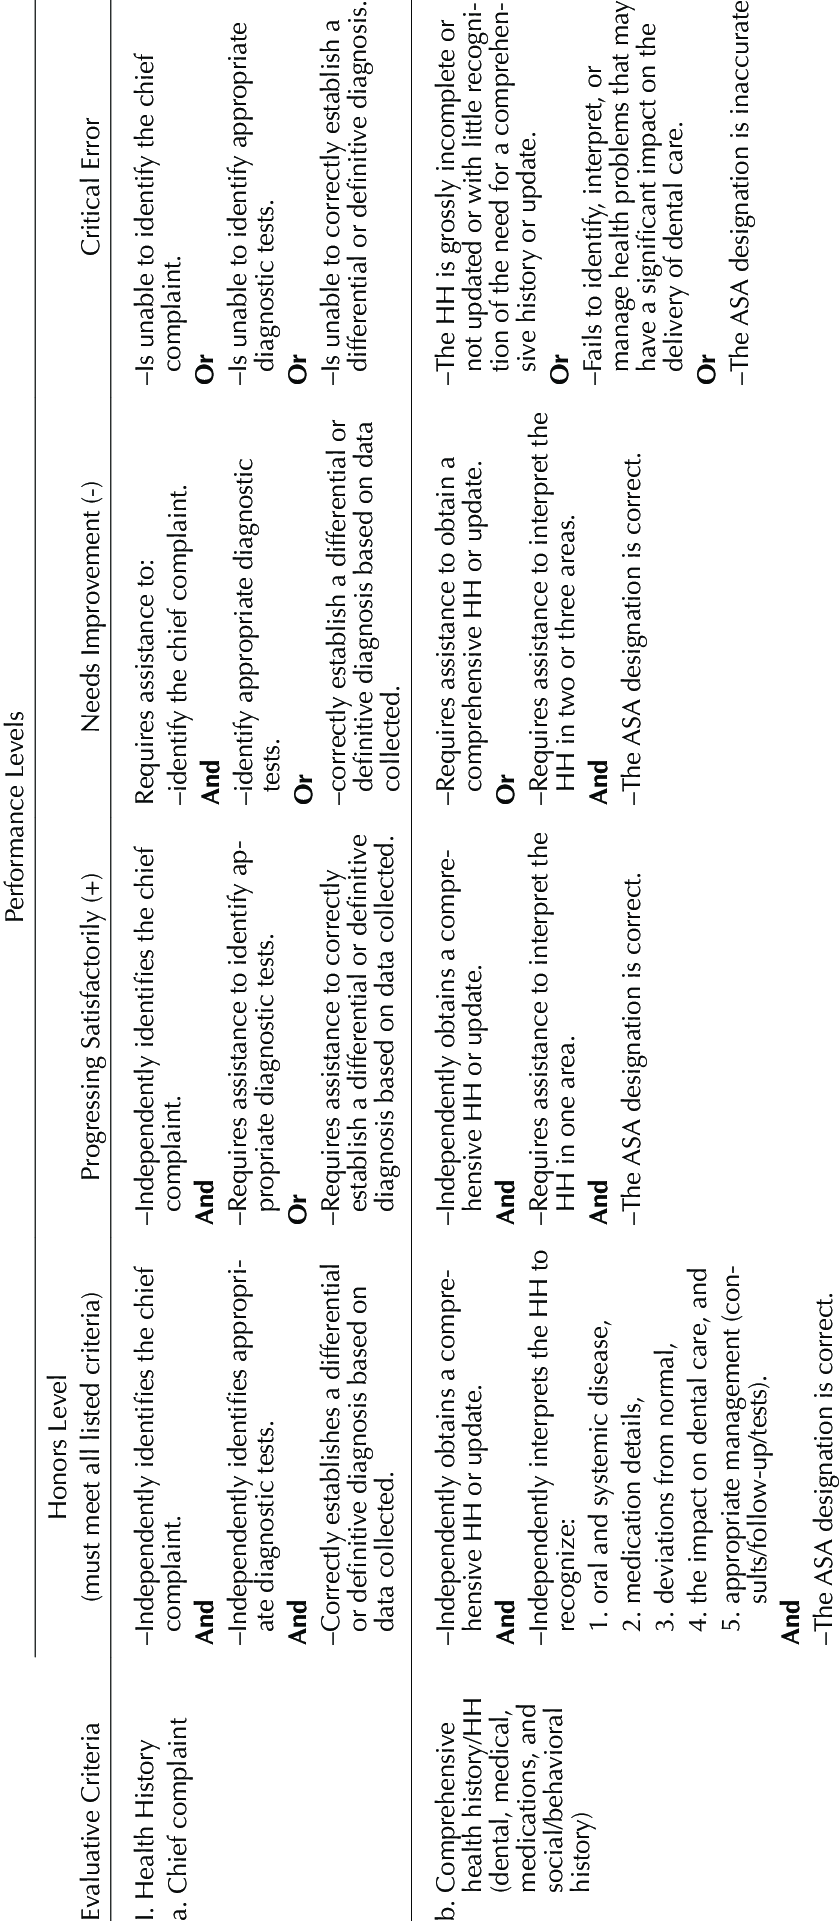 Oral diagnosis rubric used at the University of Pittsburgh